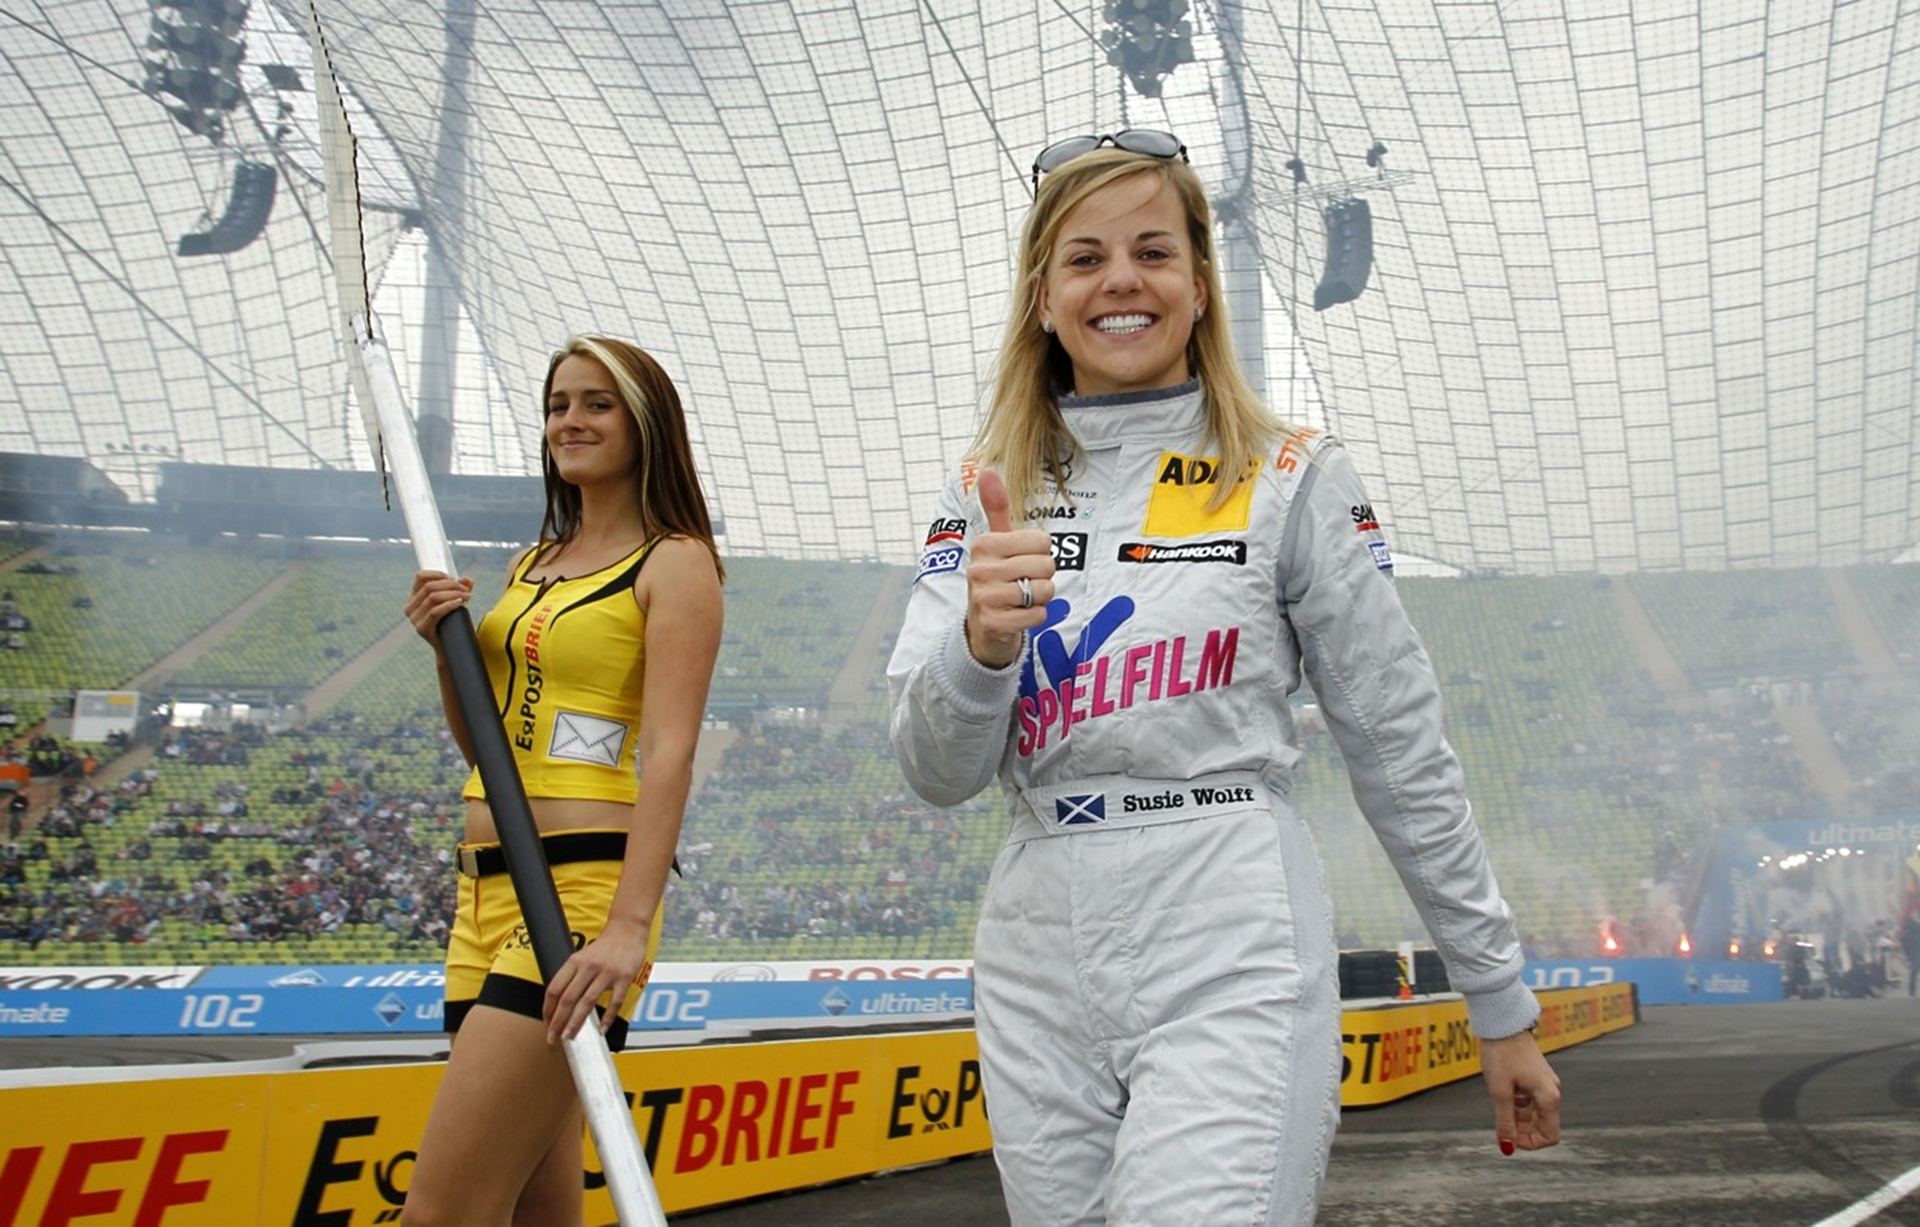 Final DTM race for Susie Wolff at the Hockenheim season finale